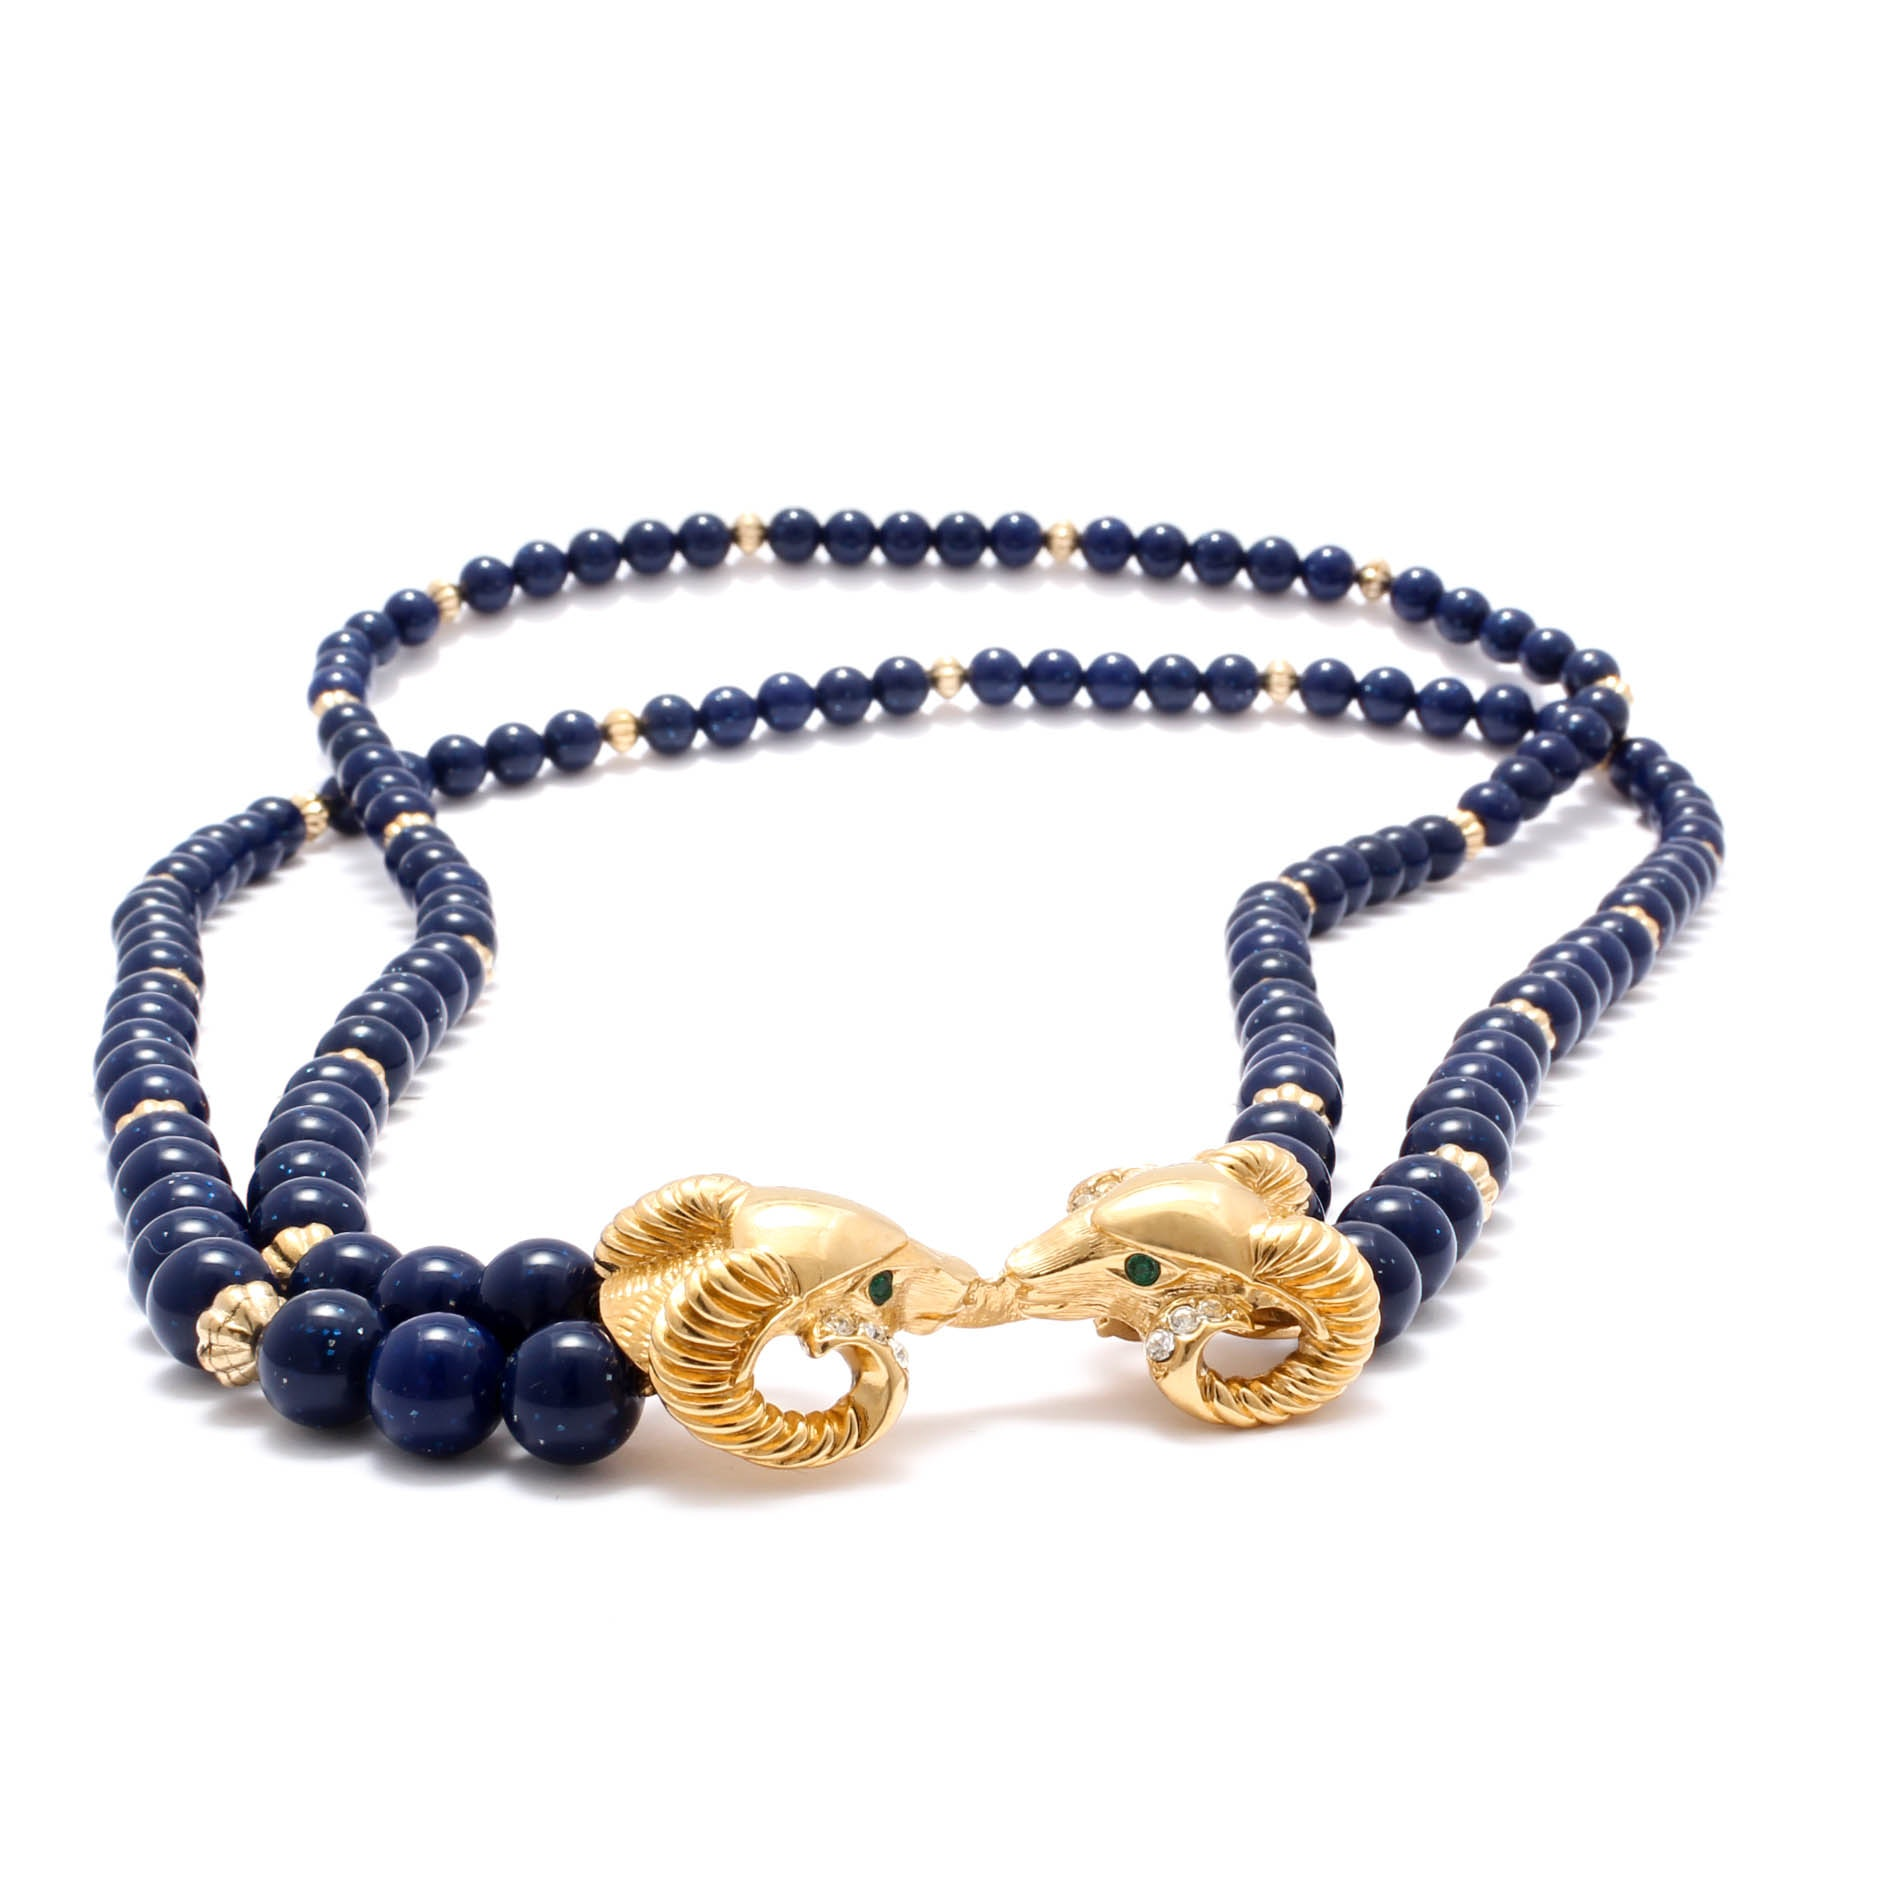 Kenneth Jay Lane for Avon Gold Tone Ram's Head Beaded Necklace